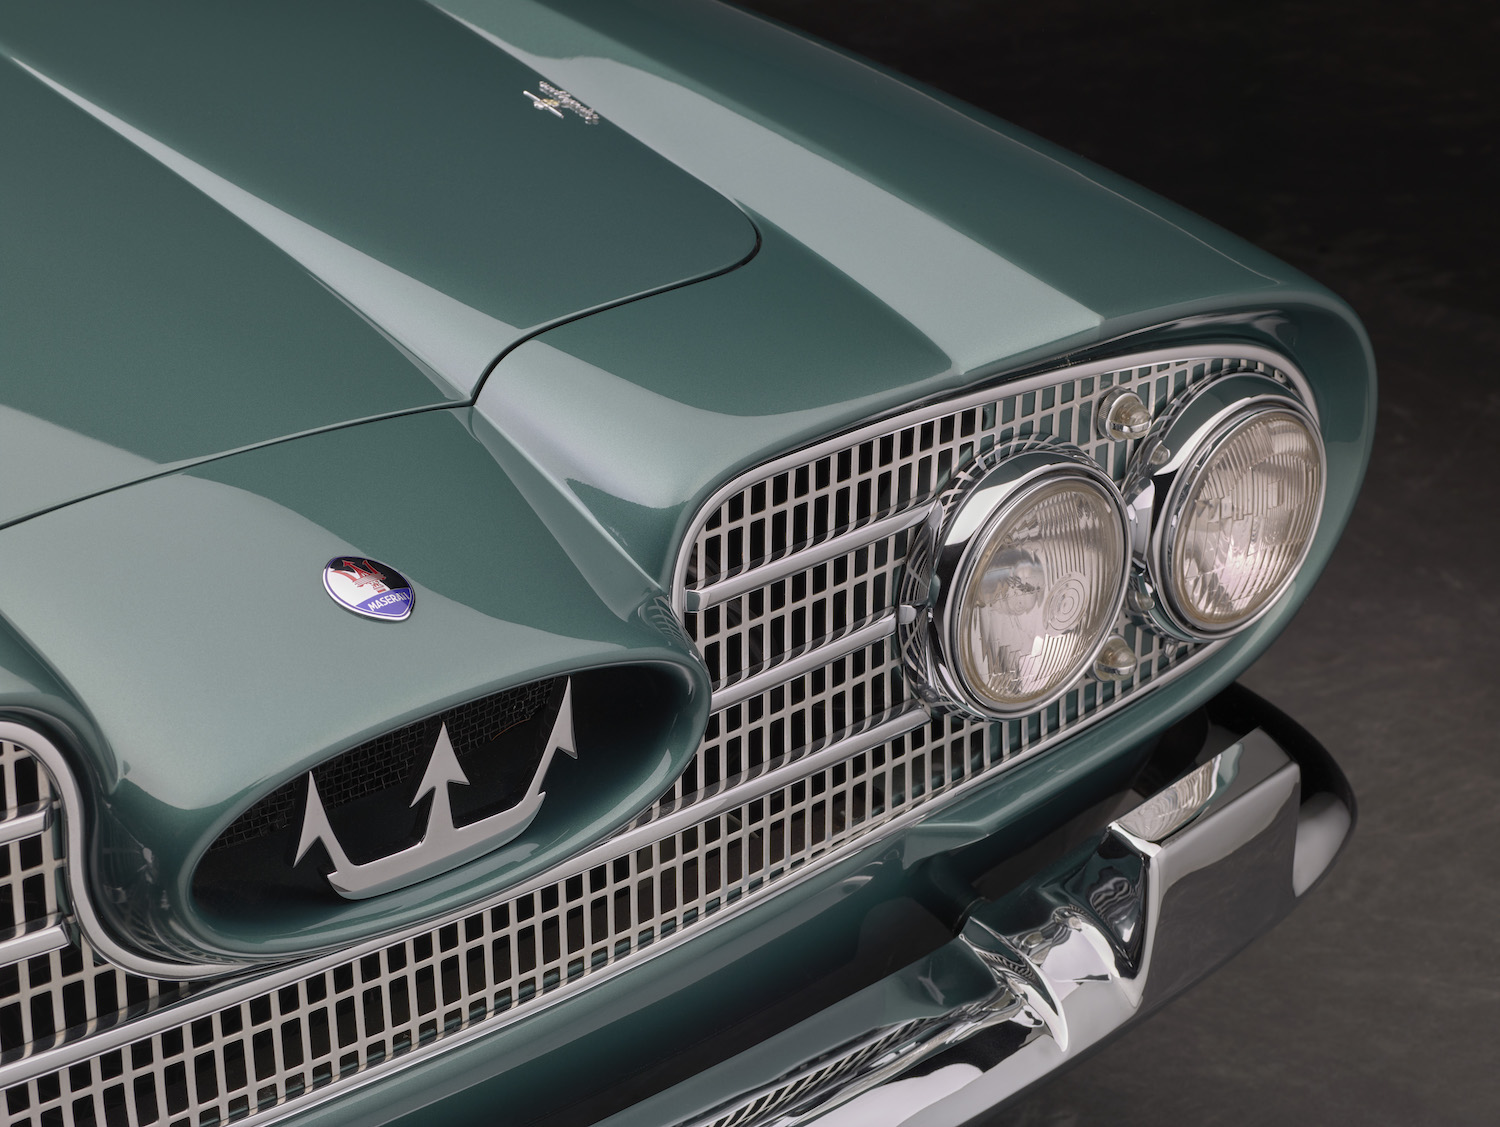 Maserati 5000 GT front grille and light